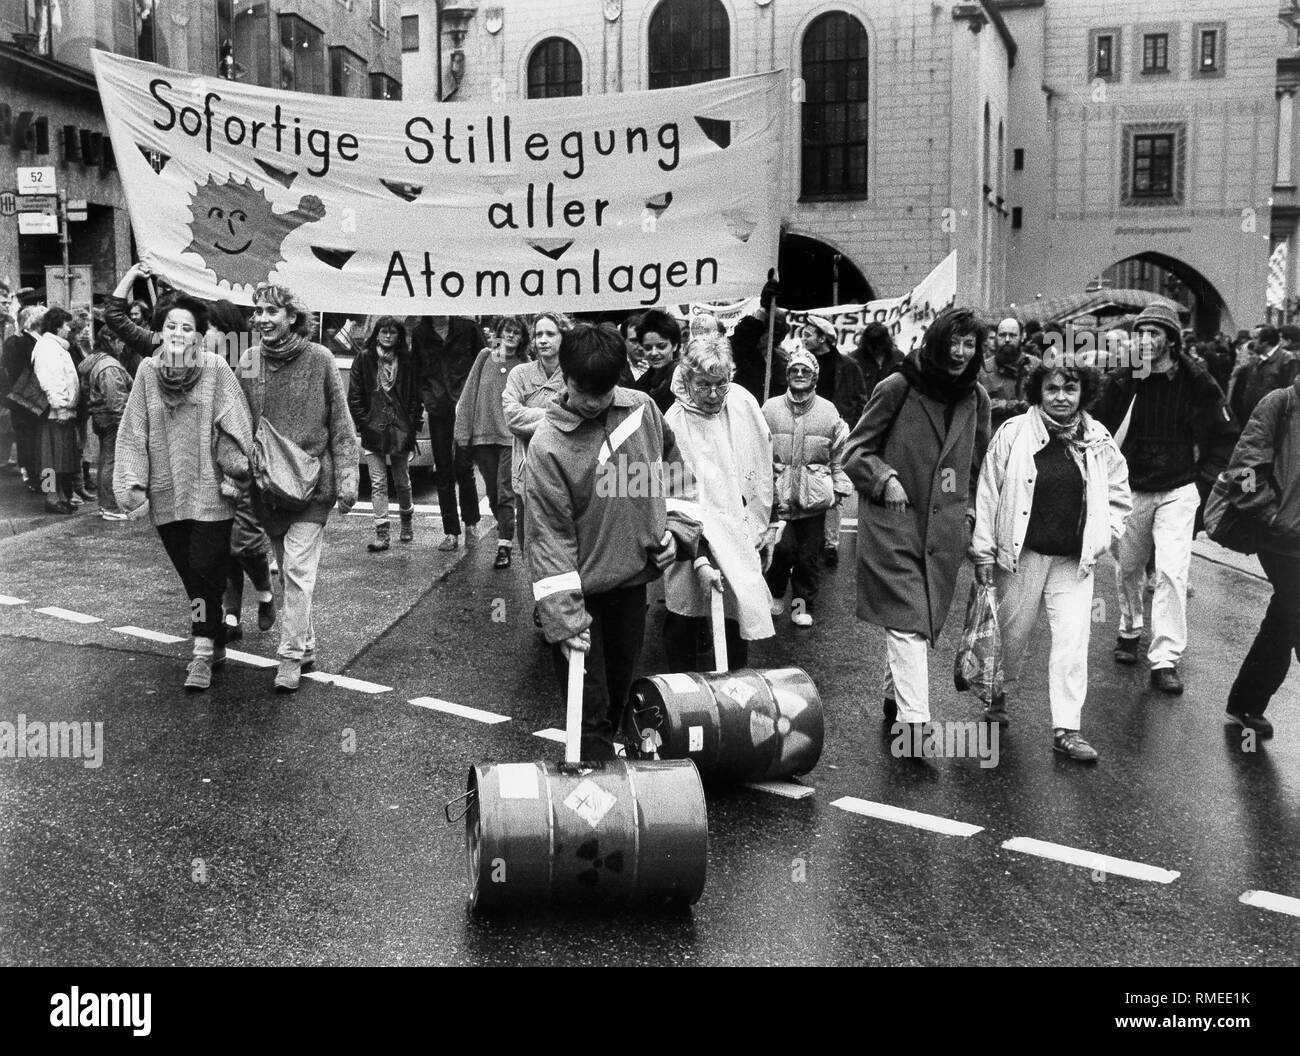 Demonstrators roll 'nuclear waste barrels' over the Marienplatz in Munich. They demonstrate with a banner reading 'Immediate decommissioning of all nuclear facilities' for 'electricity without atom' and against the 'sleaze of the atom mafia'. About 2300 demonstrators took part in the procession. - Stock Image